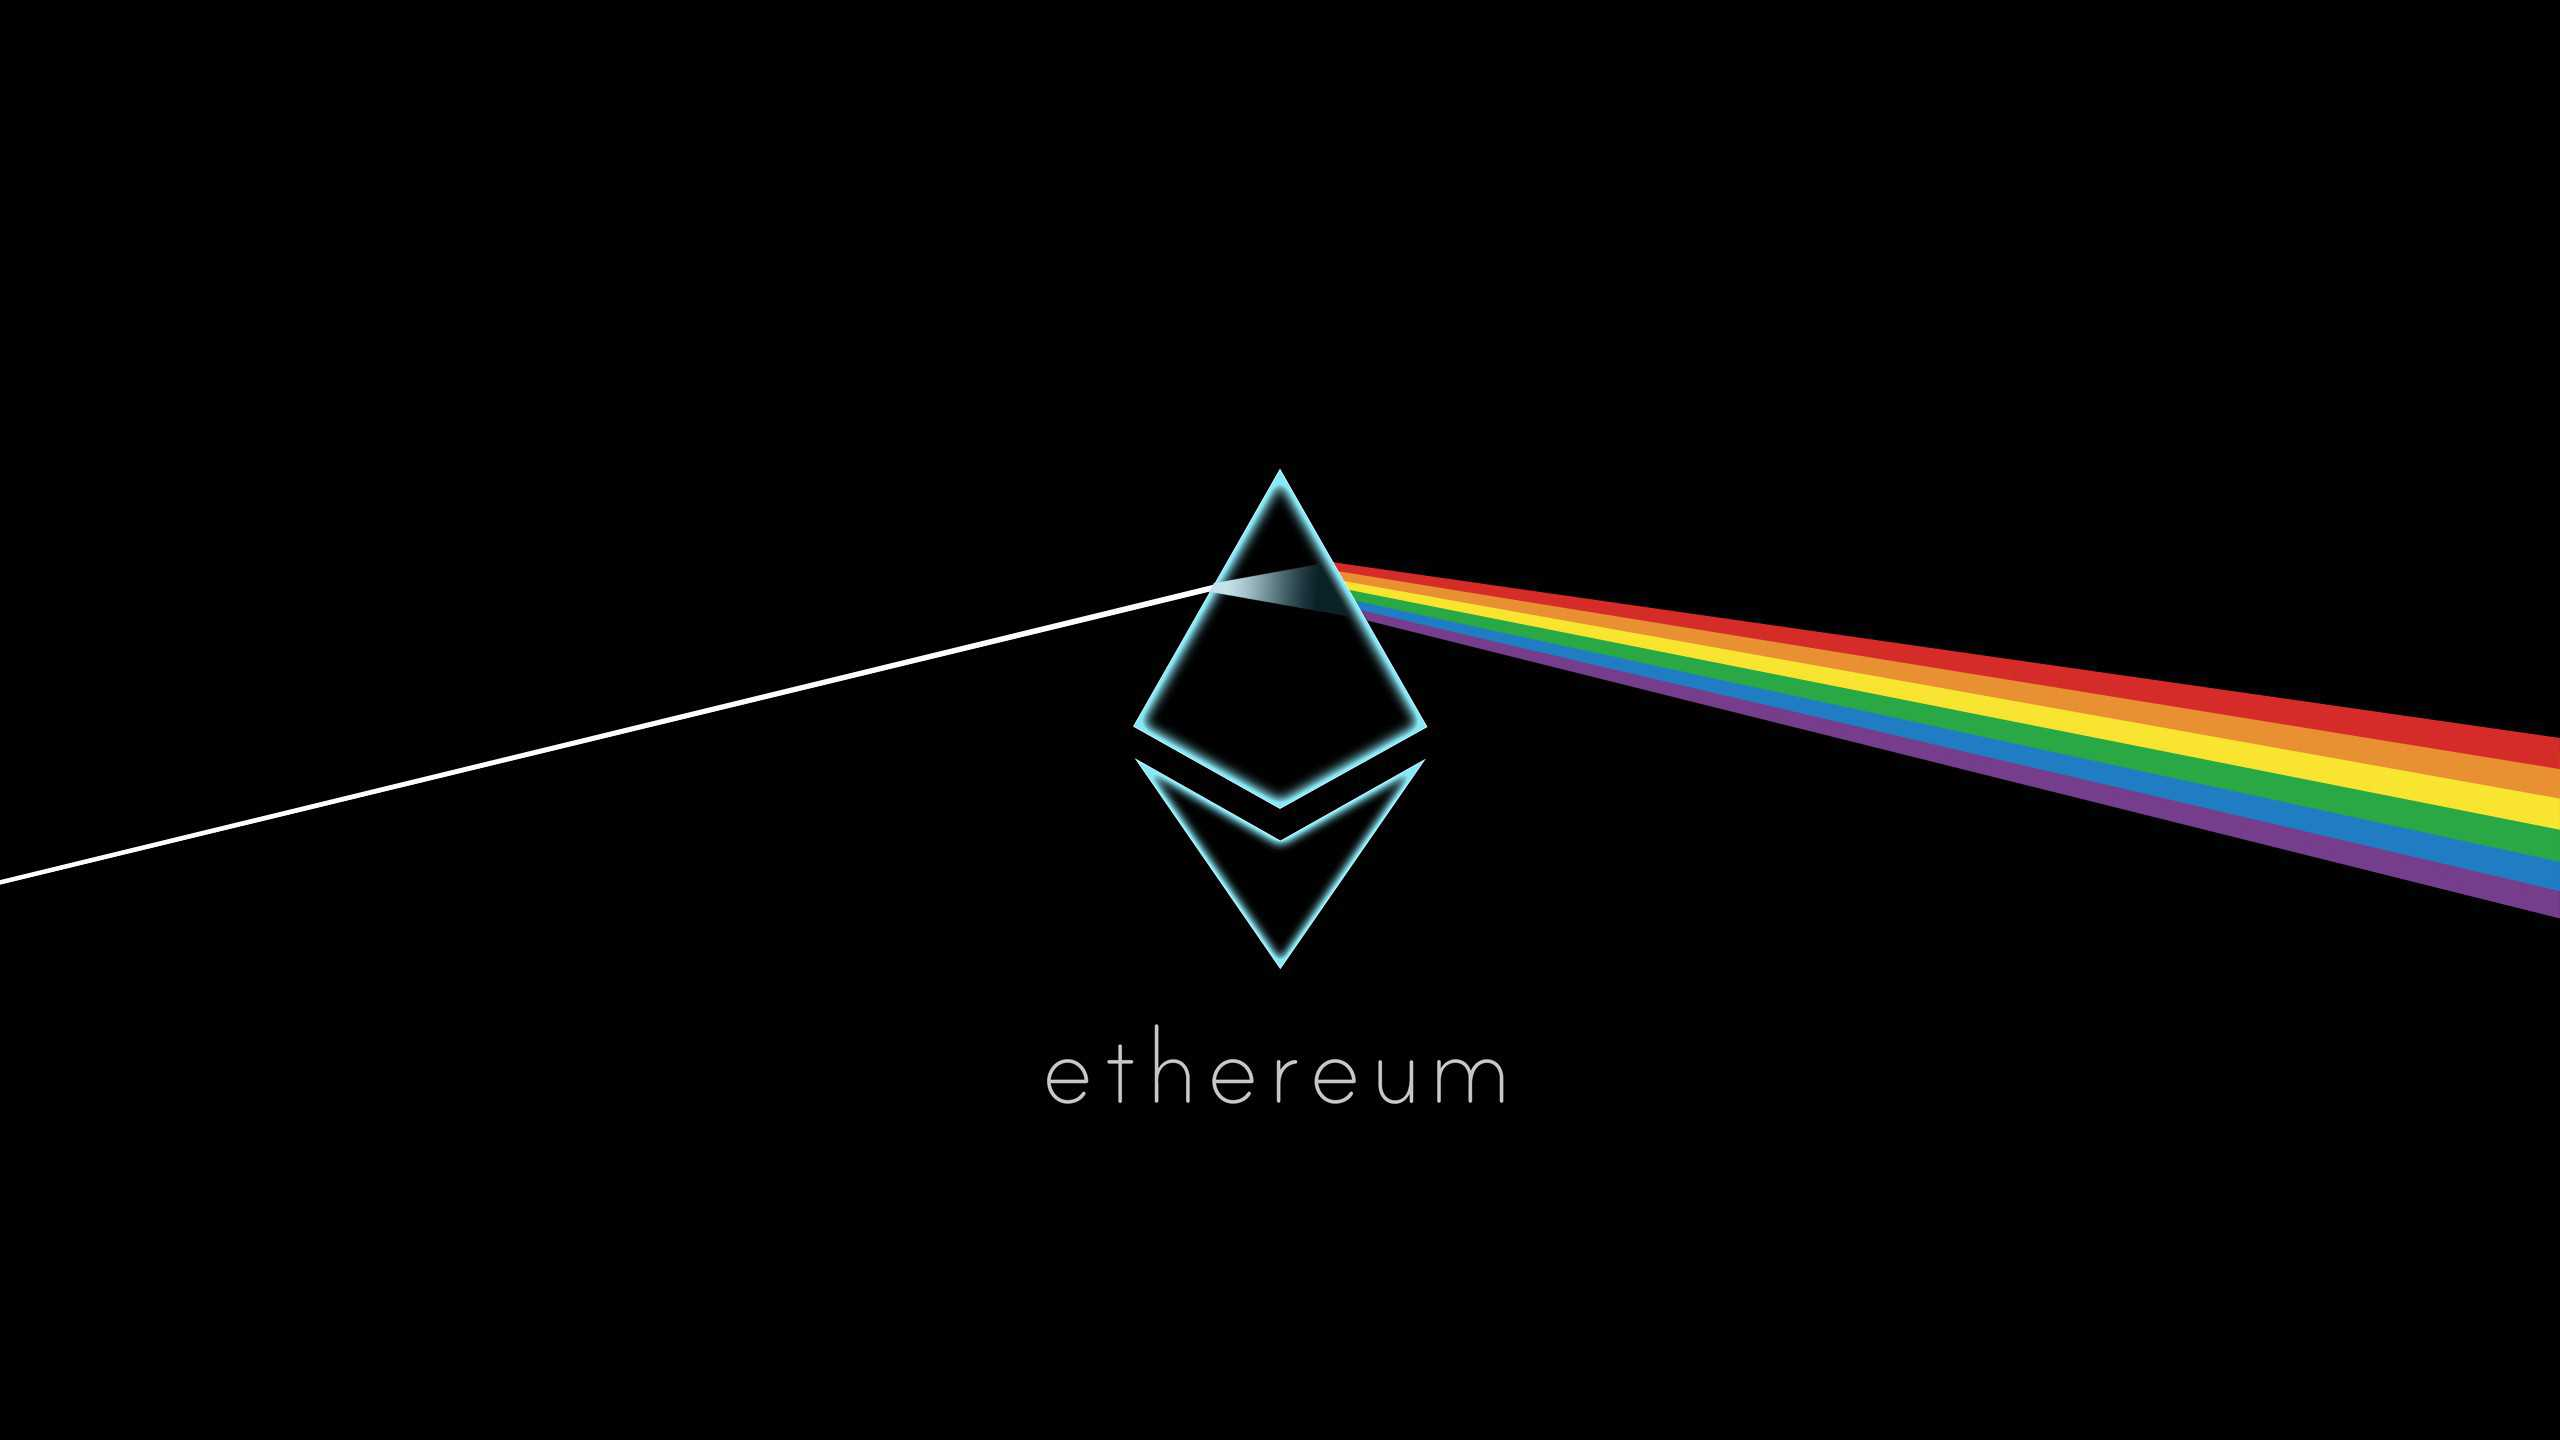 Transaction Fees on Ethereum Rise As ETH Reaches New High